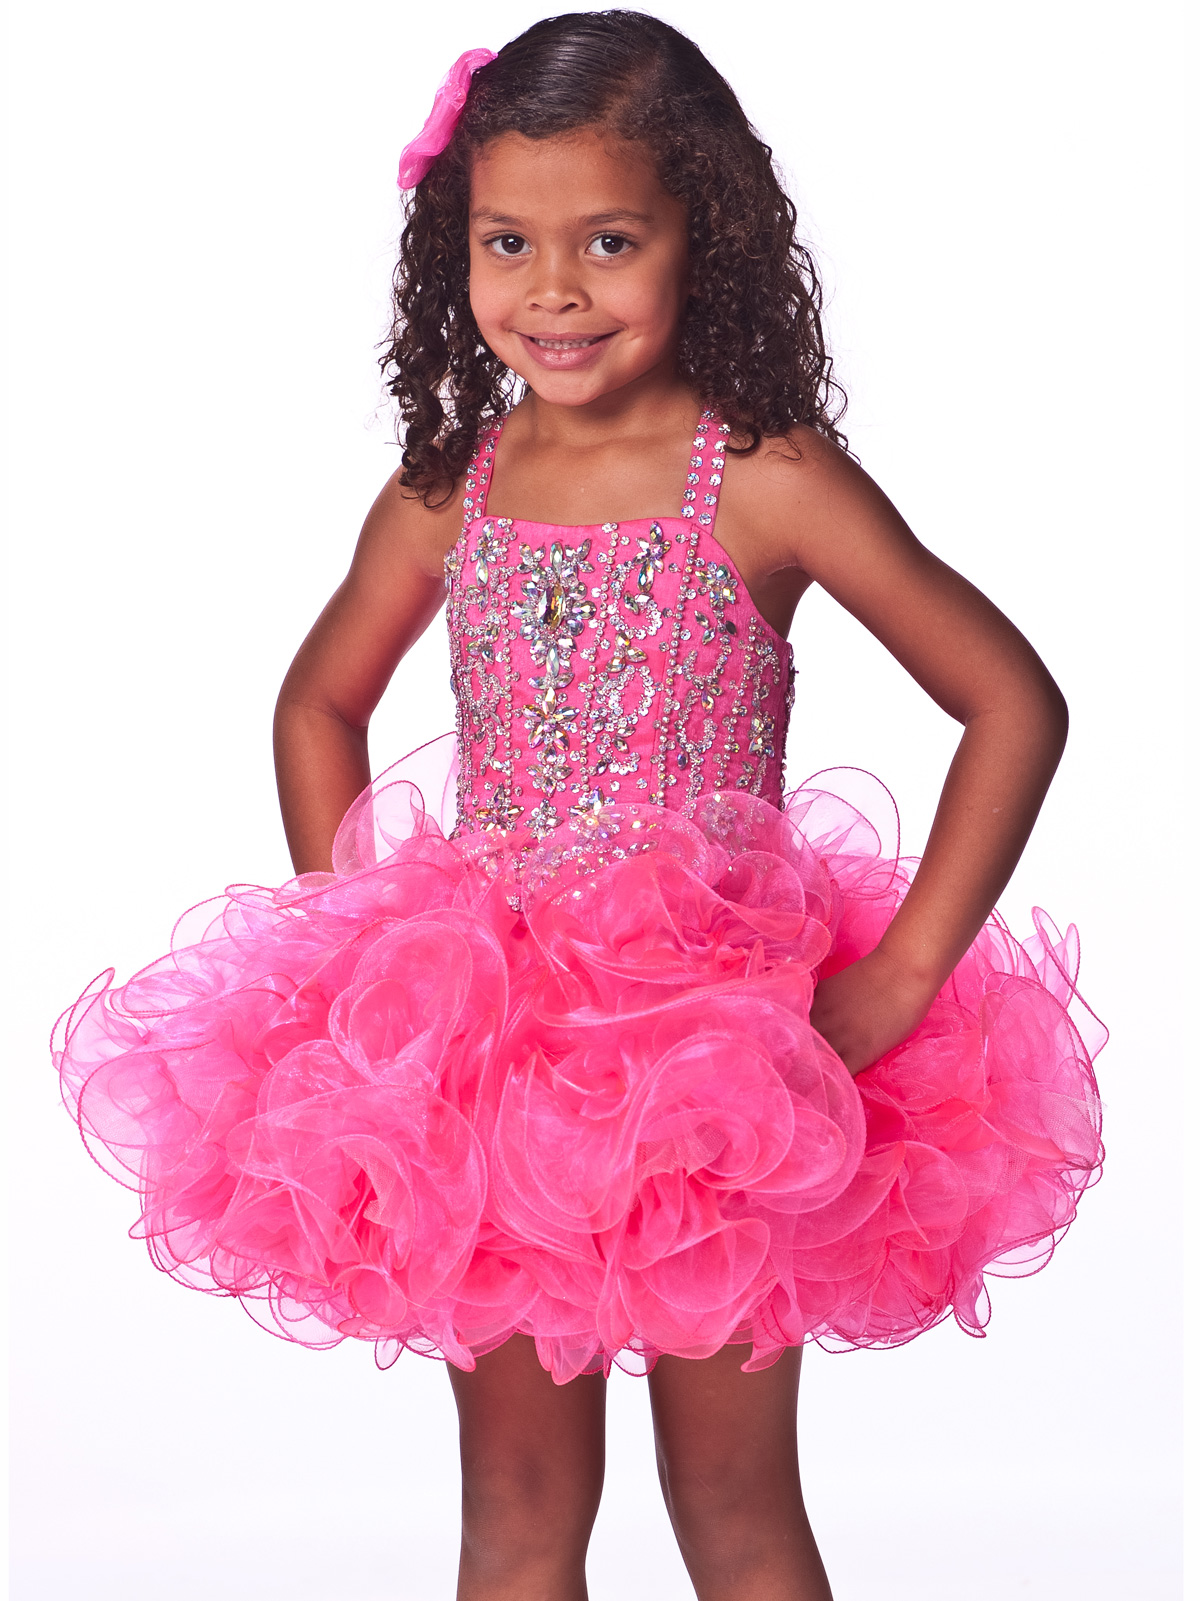 Unique Fashions Pageant Dresses For Girls: PageantDesigns.com